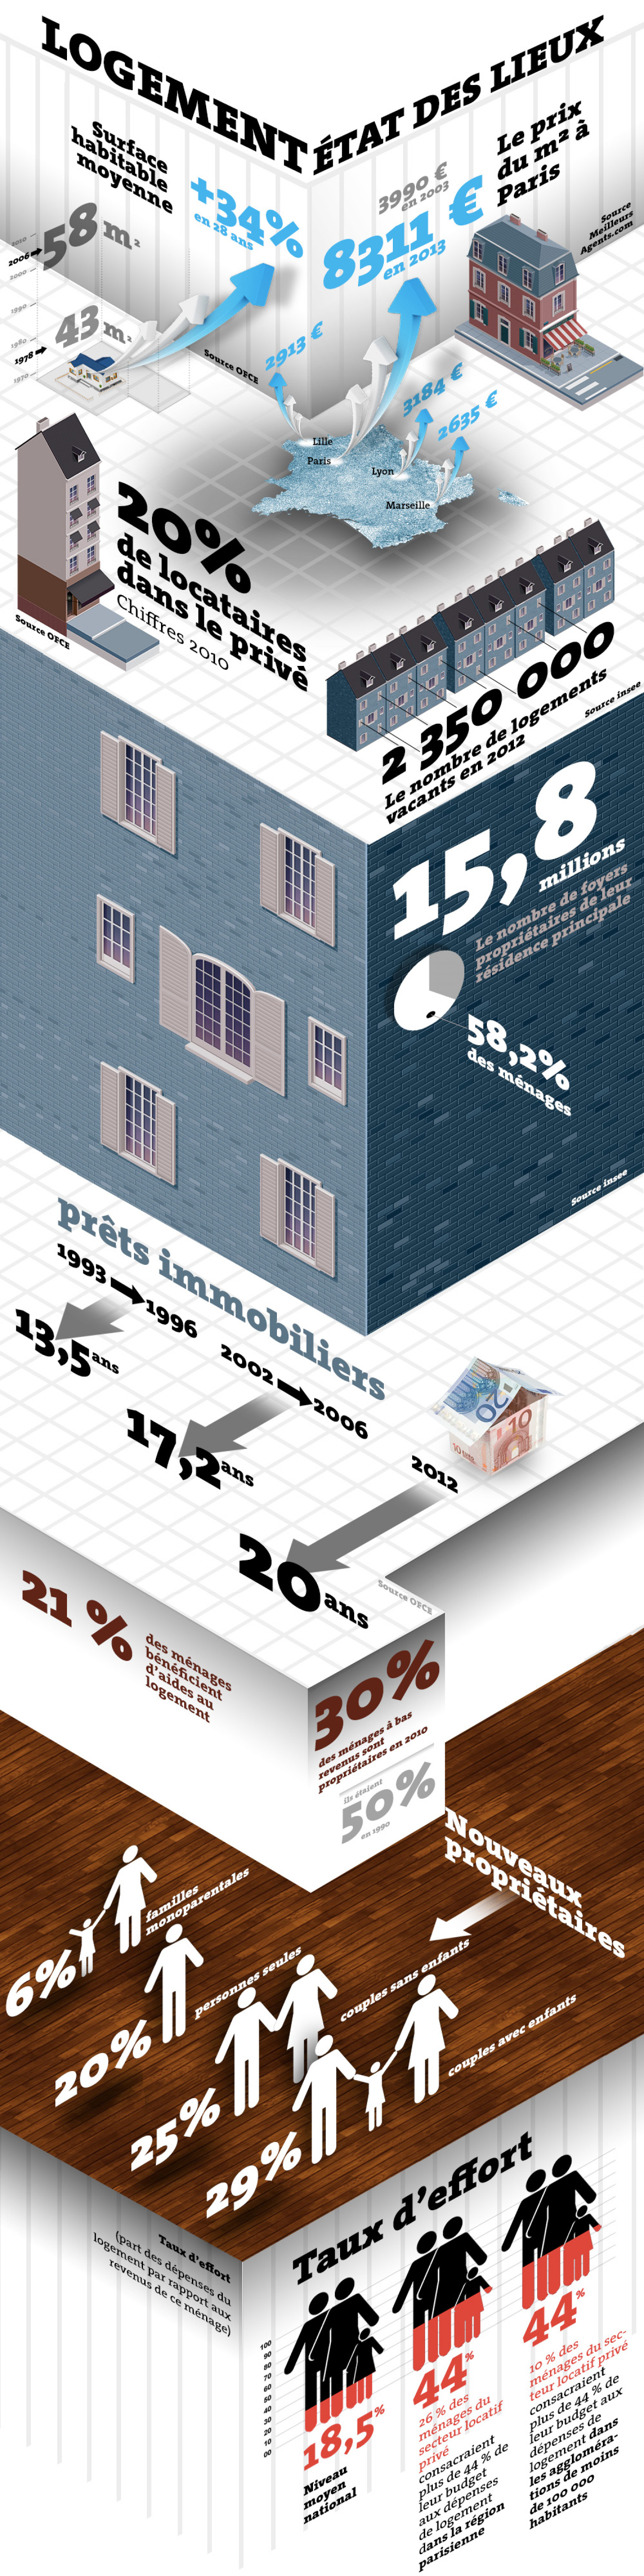 Facts and figure about real estate in France Infographic